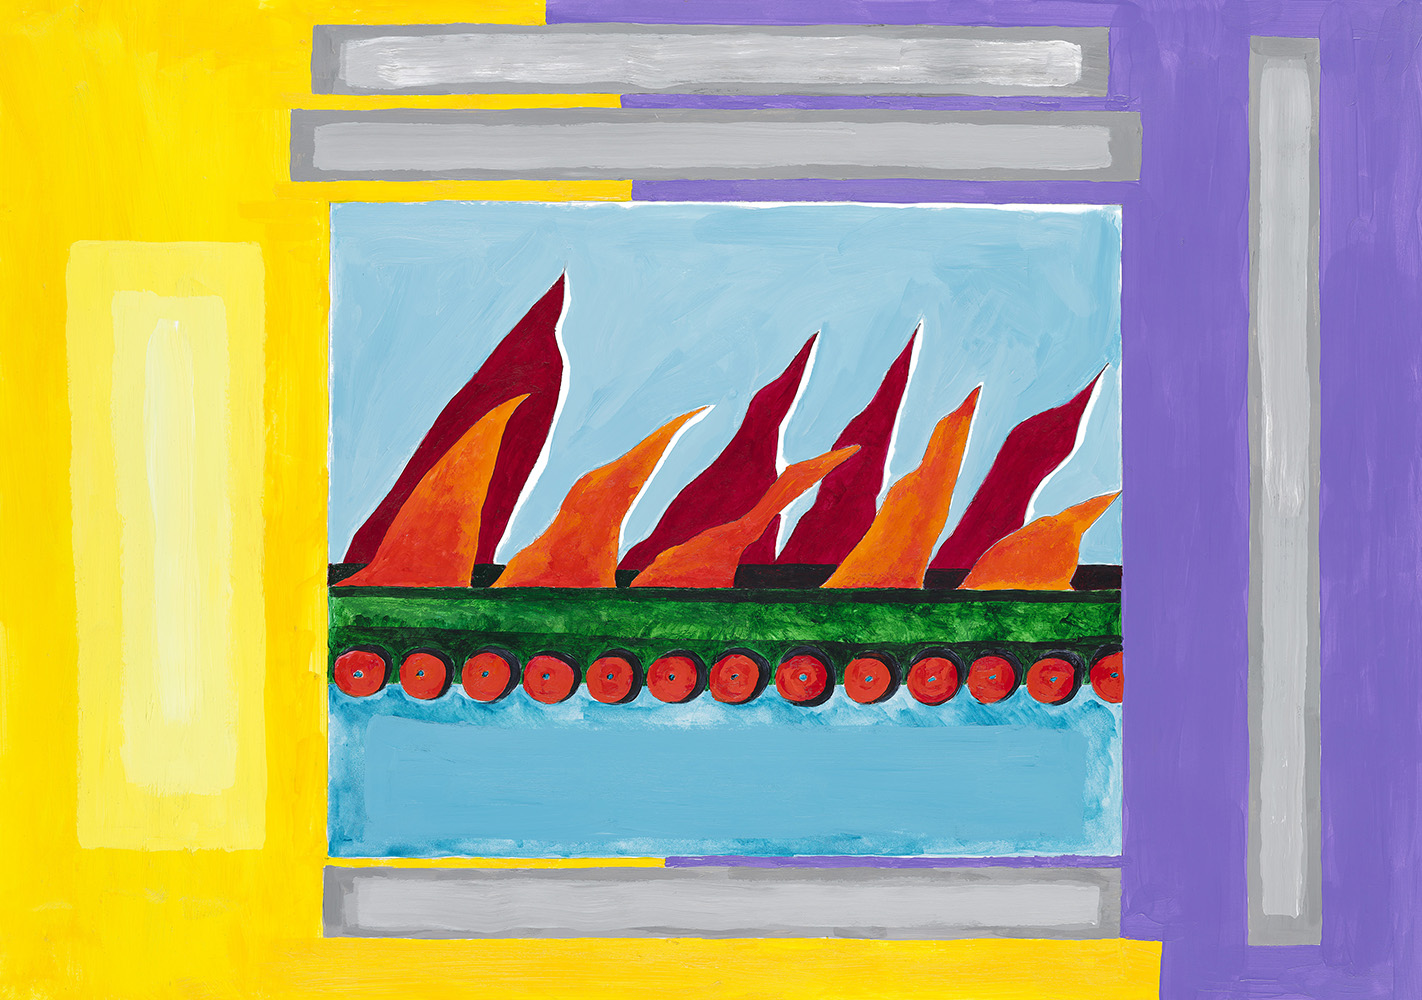 Lubaina Himid, 'Breaking in Breaking out Breaking up Breaking down', 2018 limited edition available in GI Shop (This is not the same work that will be on display at Kelvingrove)